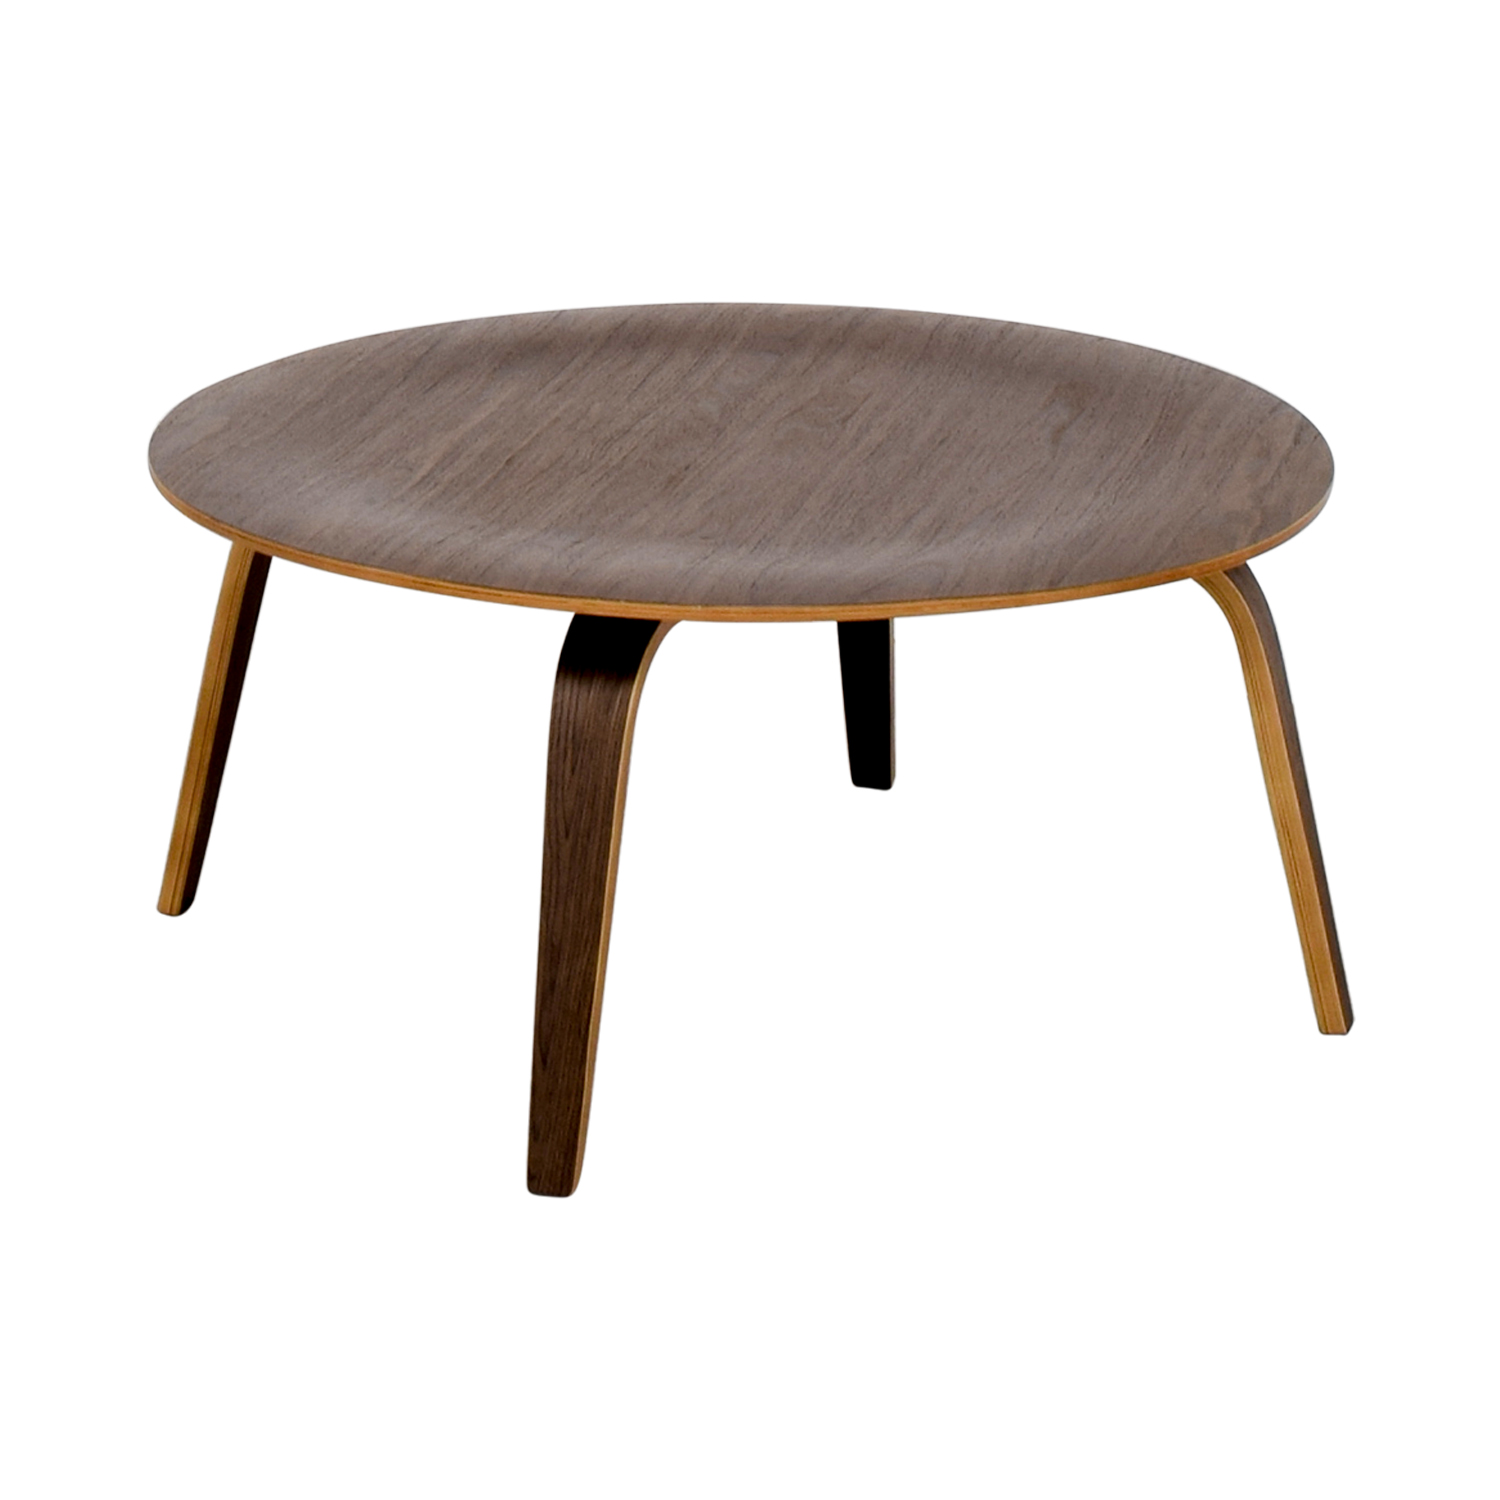 38% OFF Modway Modway Round Coffee Table Tables